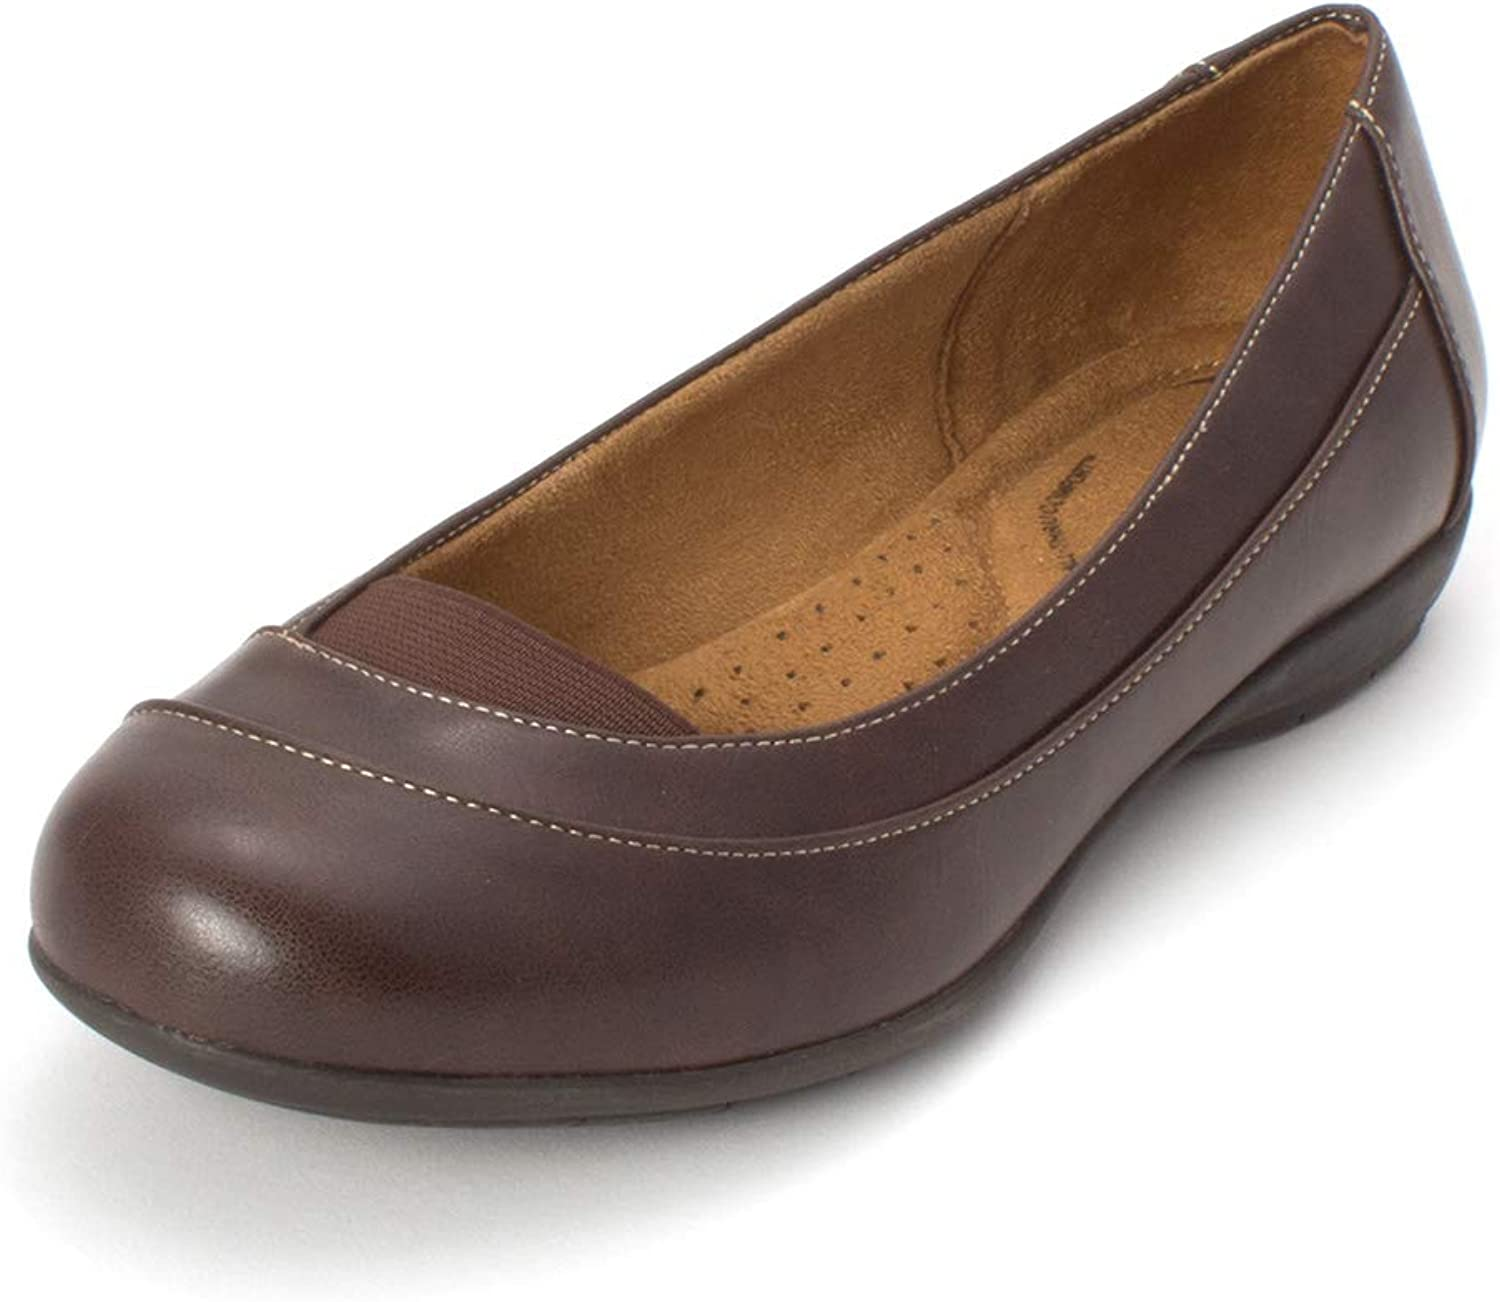 Natural Soul Womens Glamour Round Toe Ballet Flats